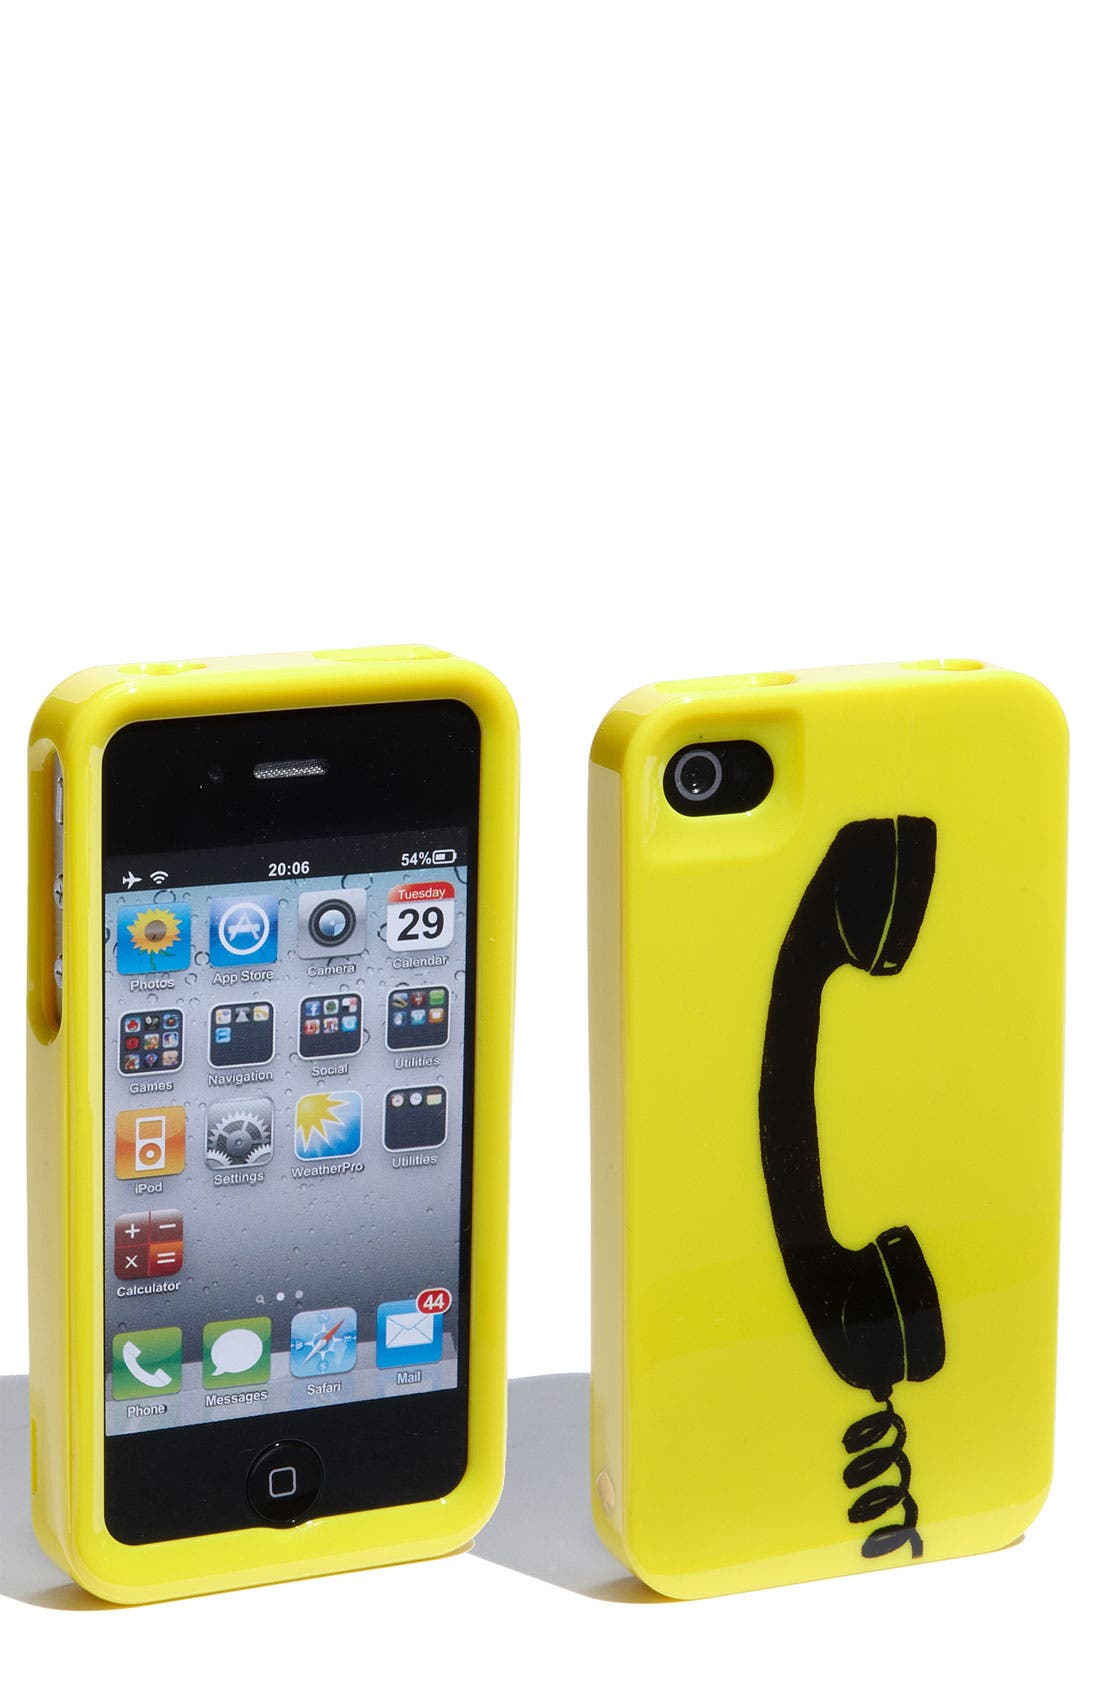 Main Image - kate spade new york 'chit chat' iPhone 4 & 4S case